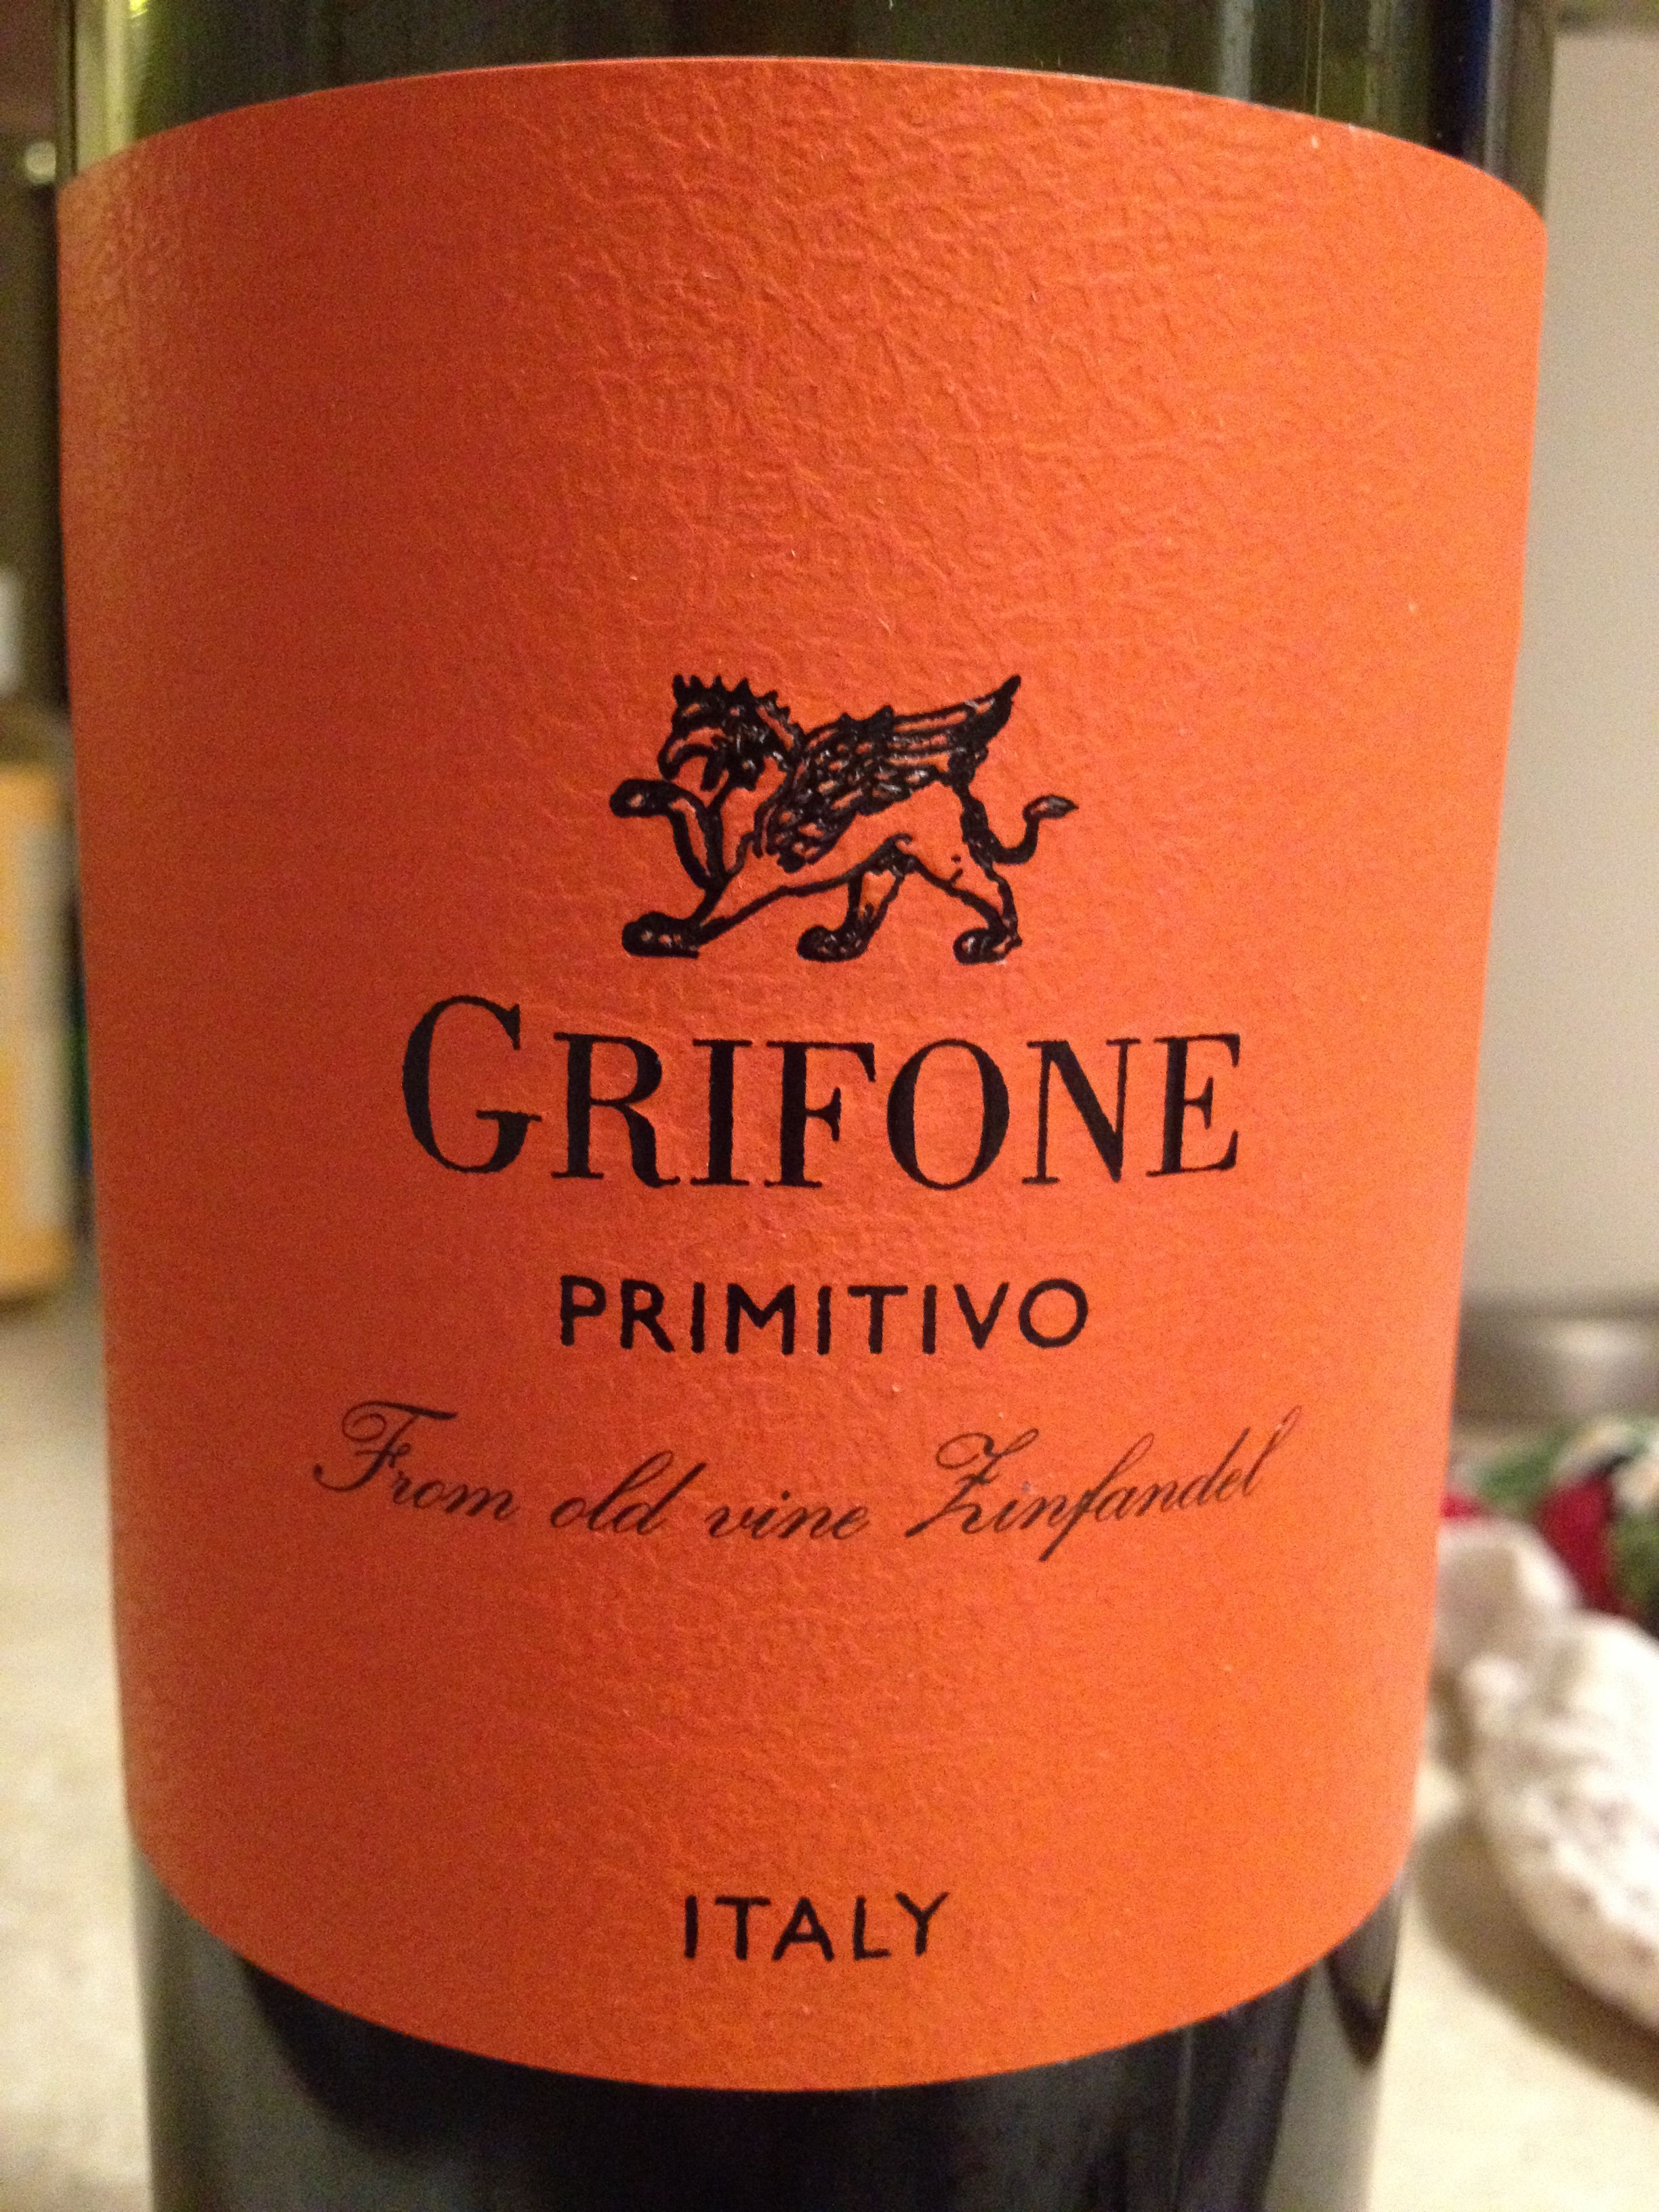 Grifone Primitivo Soft And Deep With Flavorful Vanilla Notes And A Long Finish Wine Label Packaging Wine Lovers Wine